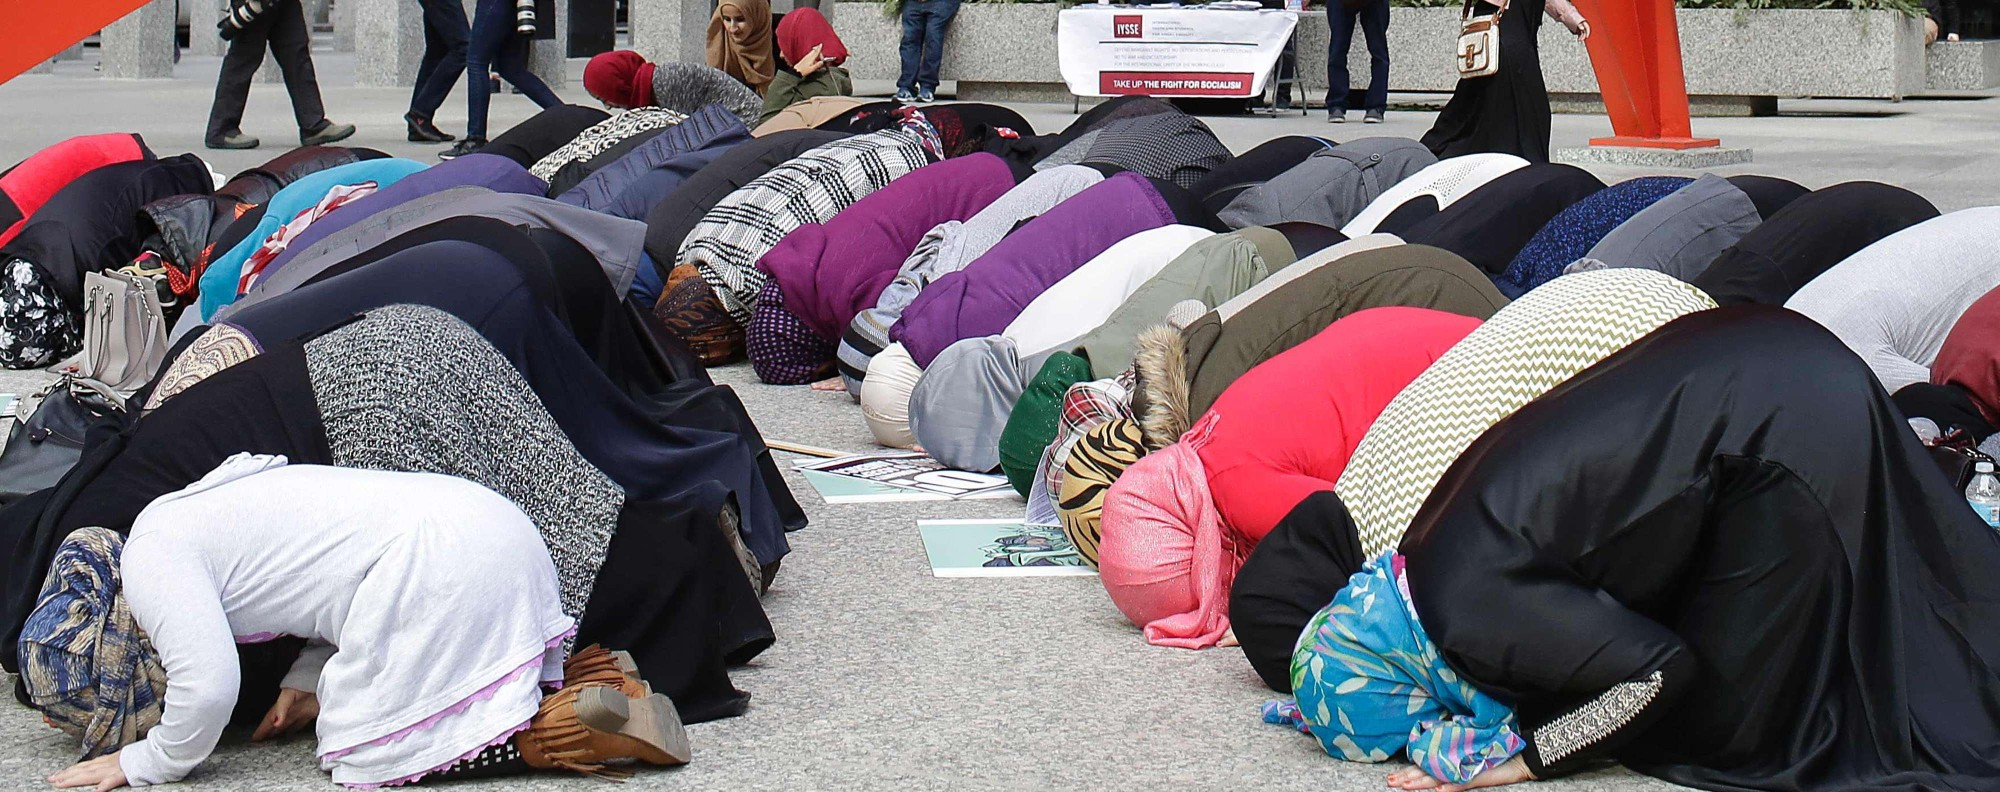 Muslim woman pray in Chicago. Photo: AFP